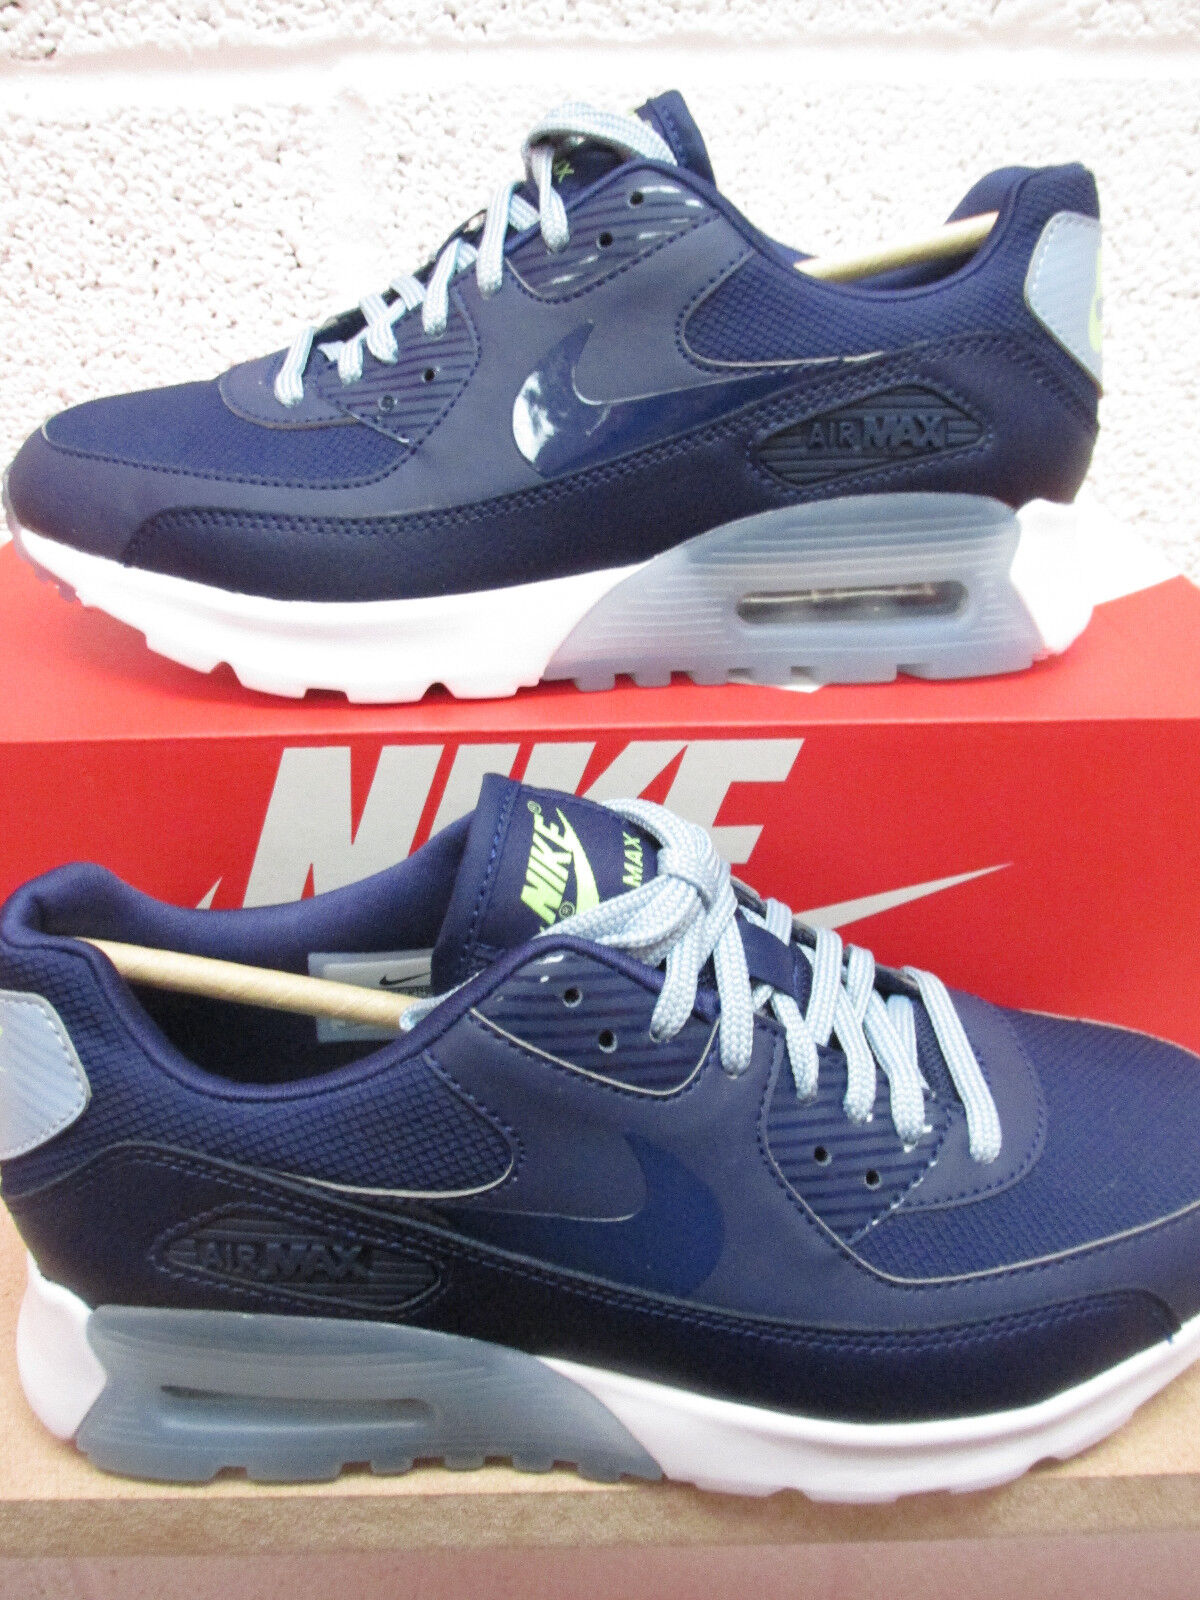 nike womens air max 90 ultra essential trainers 724981 402 sneakers shoes